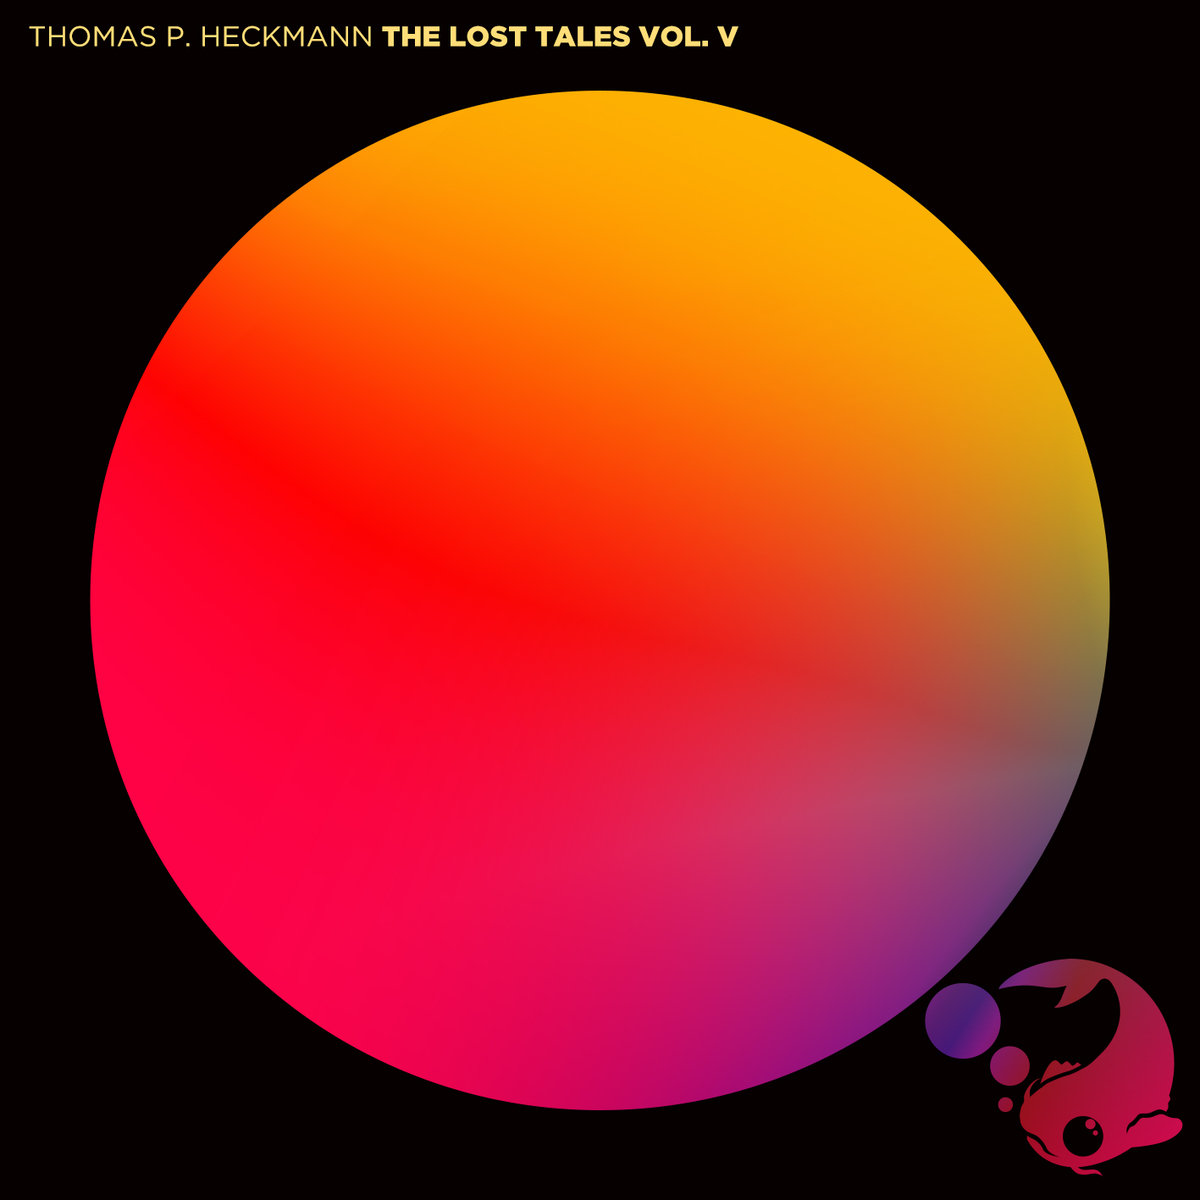 The Lost Tales Vol.V - Thomas P. Heckmann